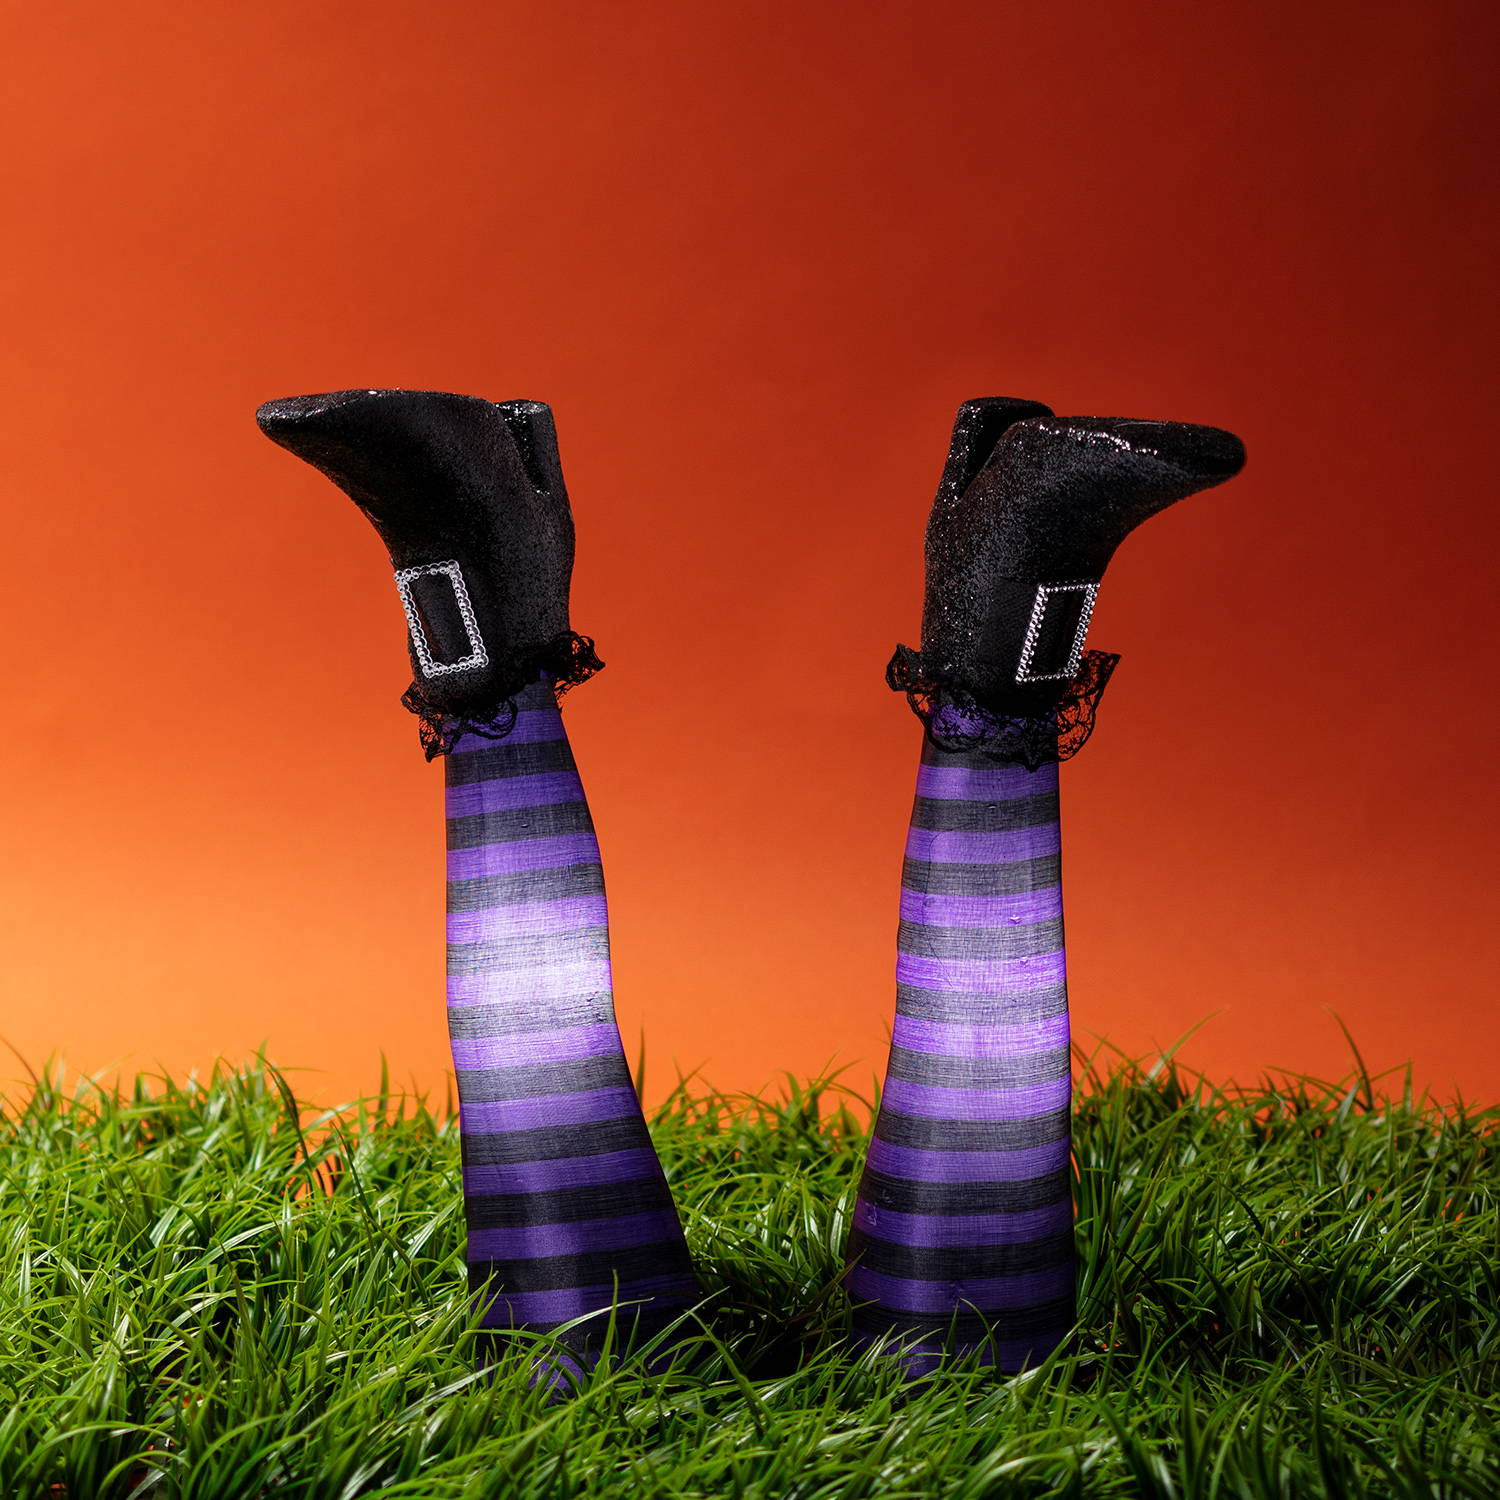 Halloween witch leg stake lights secured into the grass